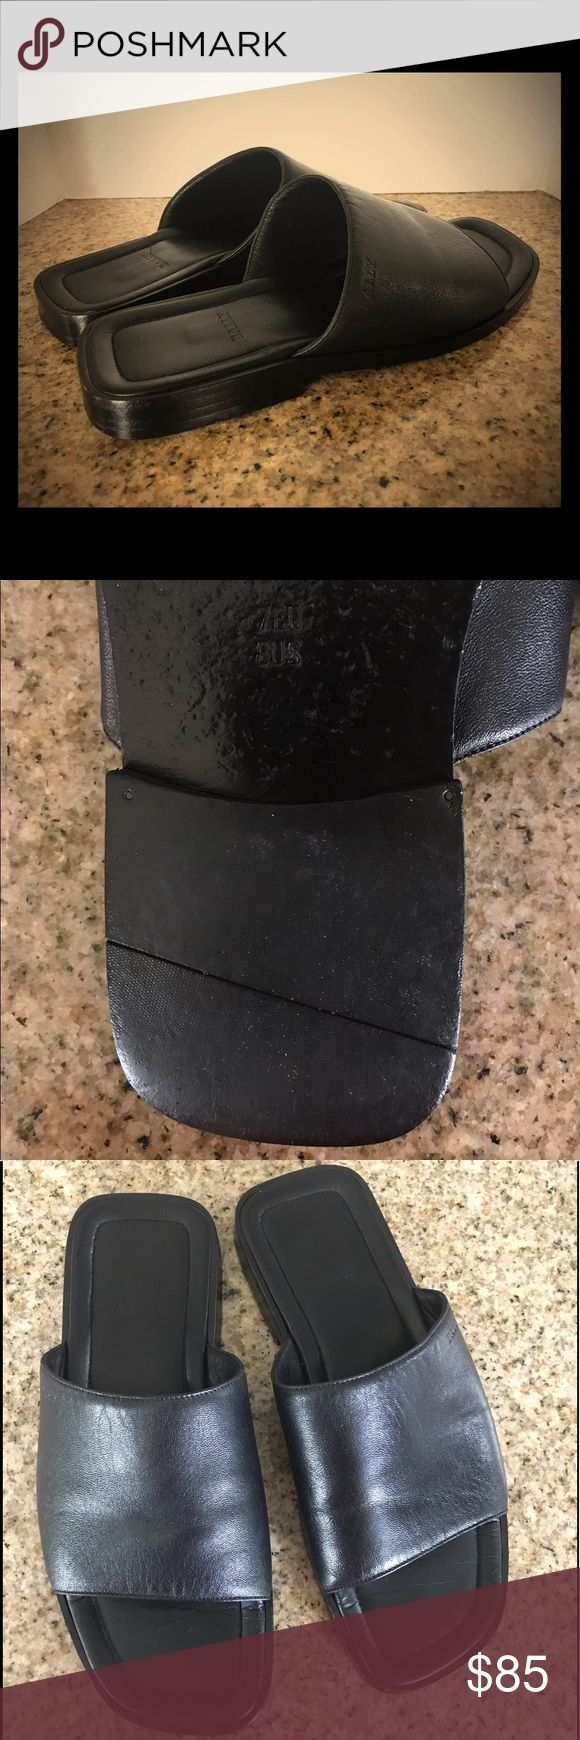 Bally Switzerland black men's slip-ons Bally Switzerland black men's slip-ons in size 7 EU - 8 US. These are very elegant and sleek men's slip-on sandals made of fine Swiss leather and are in excellent condition, have been cleaned and are ready to enjoy. There are no flaws, no tears and no scuffs whatsoever. A steal for the price! Bally Shoes Loafers & Slip-Ons